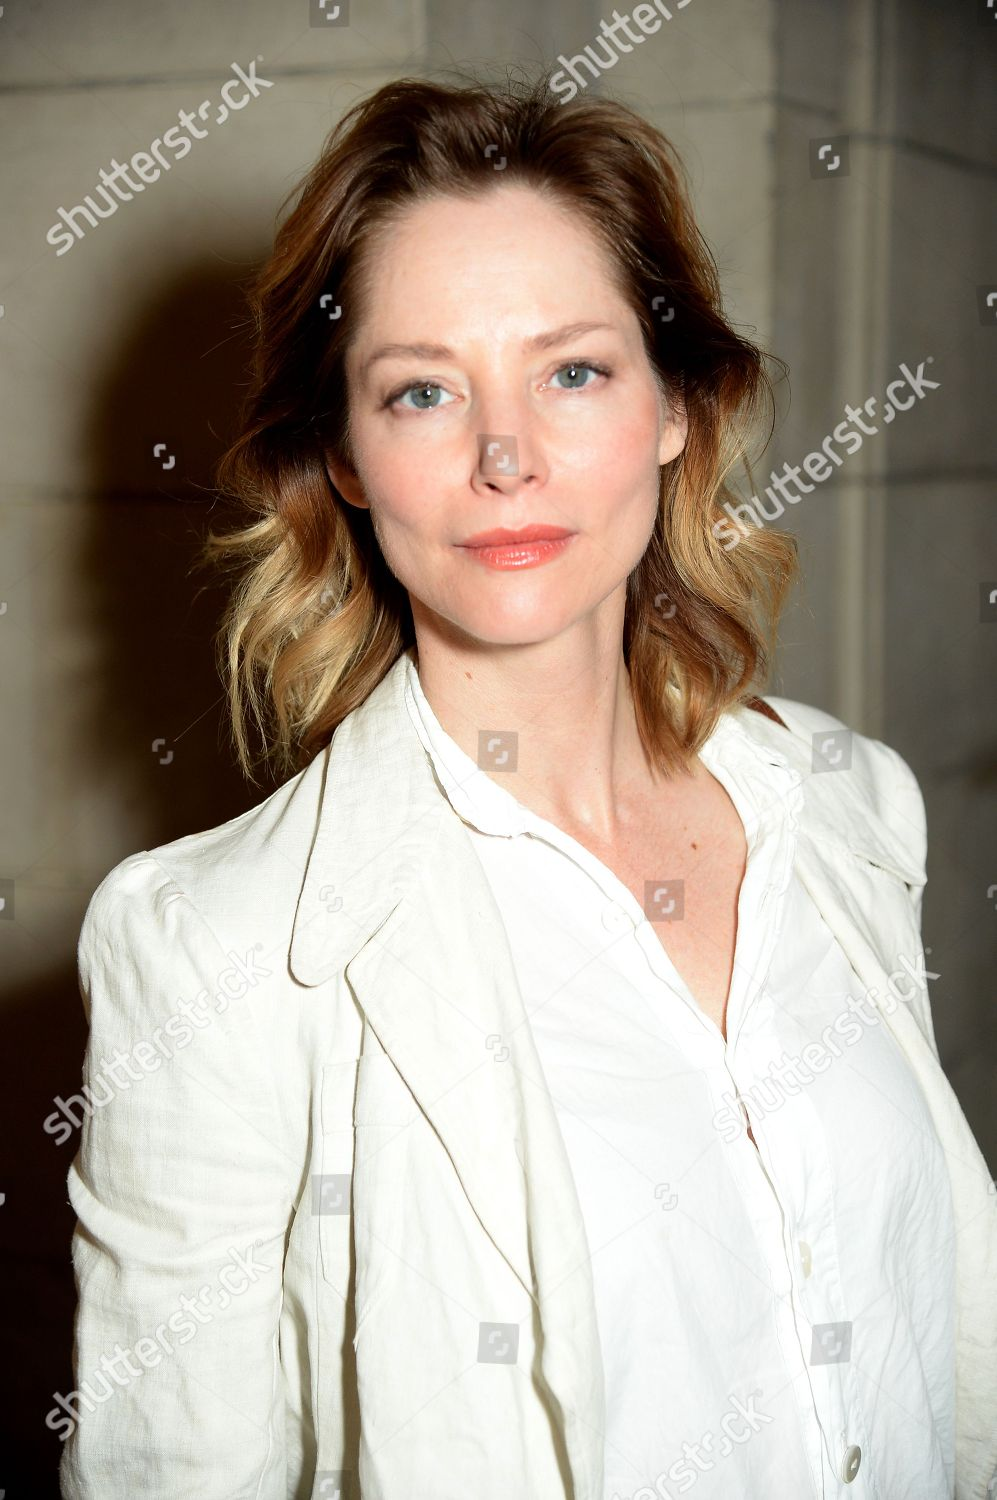 Young Sienna Guillory nudes (36 foto and video), Sexy, Hot, Twitter, braless 2017